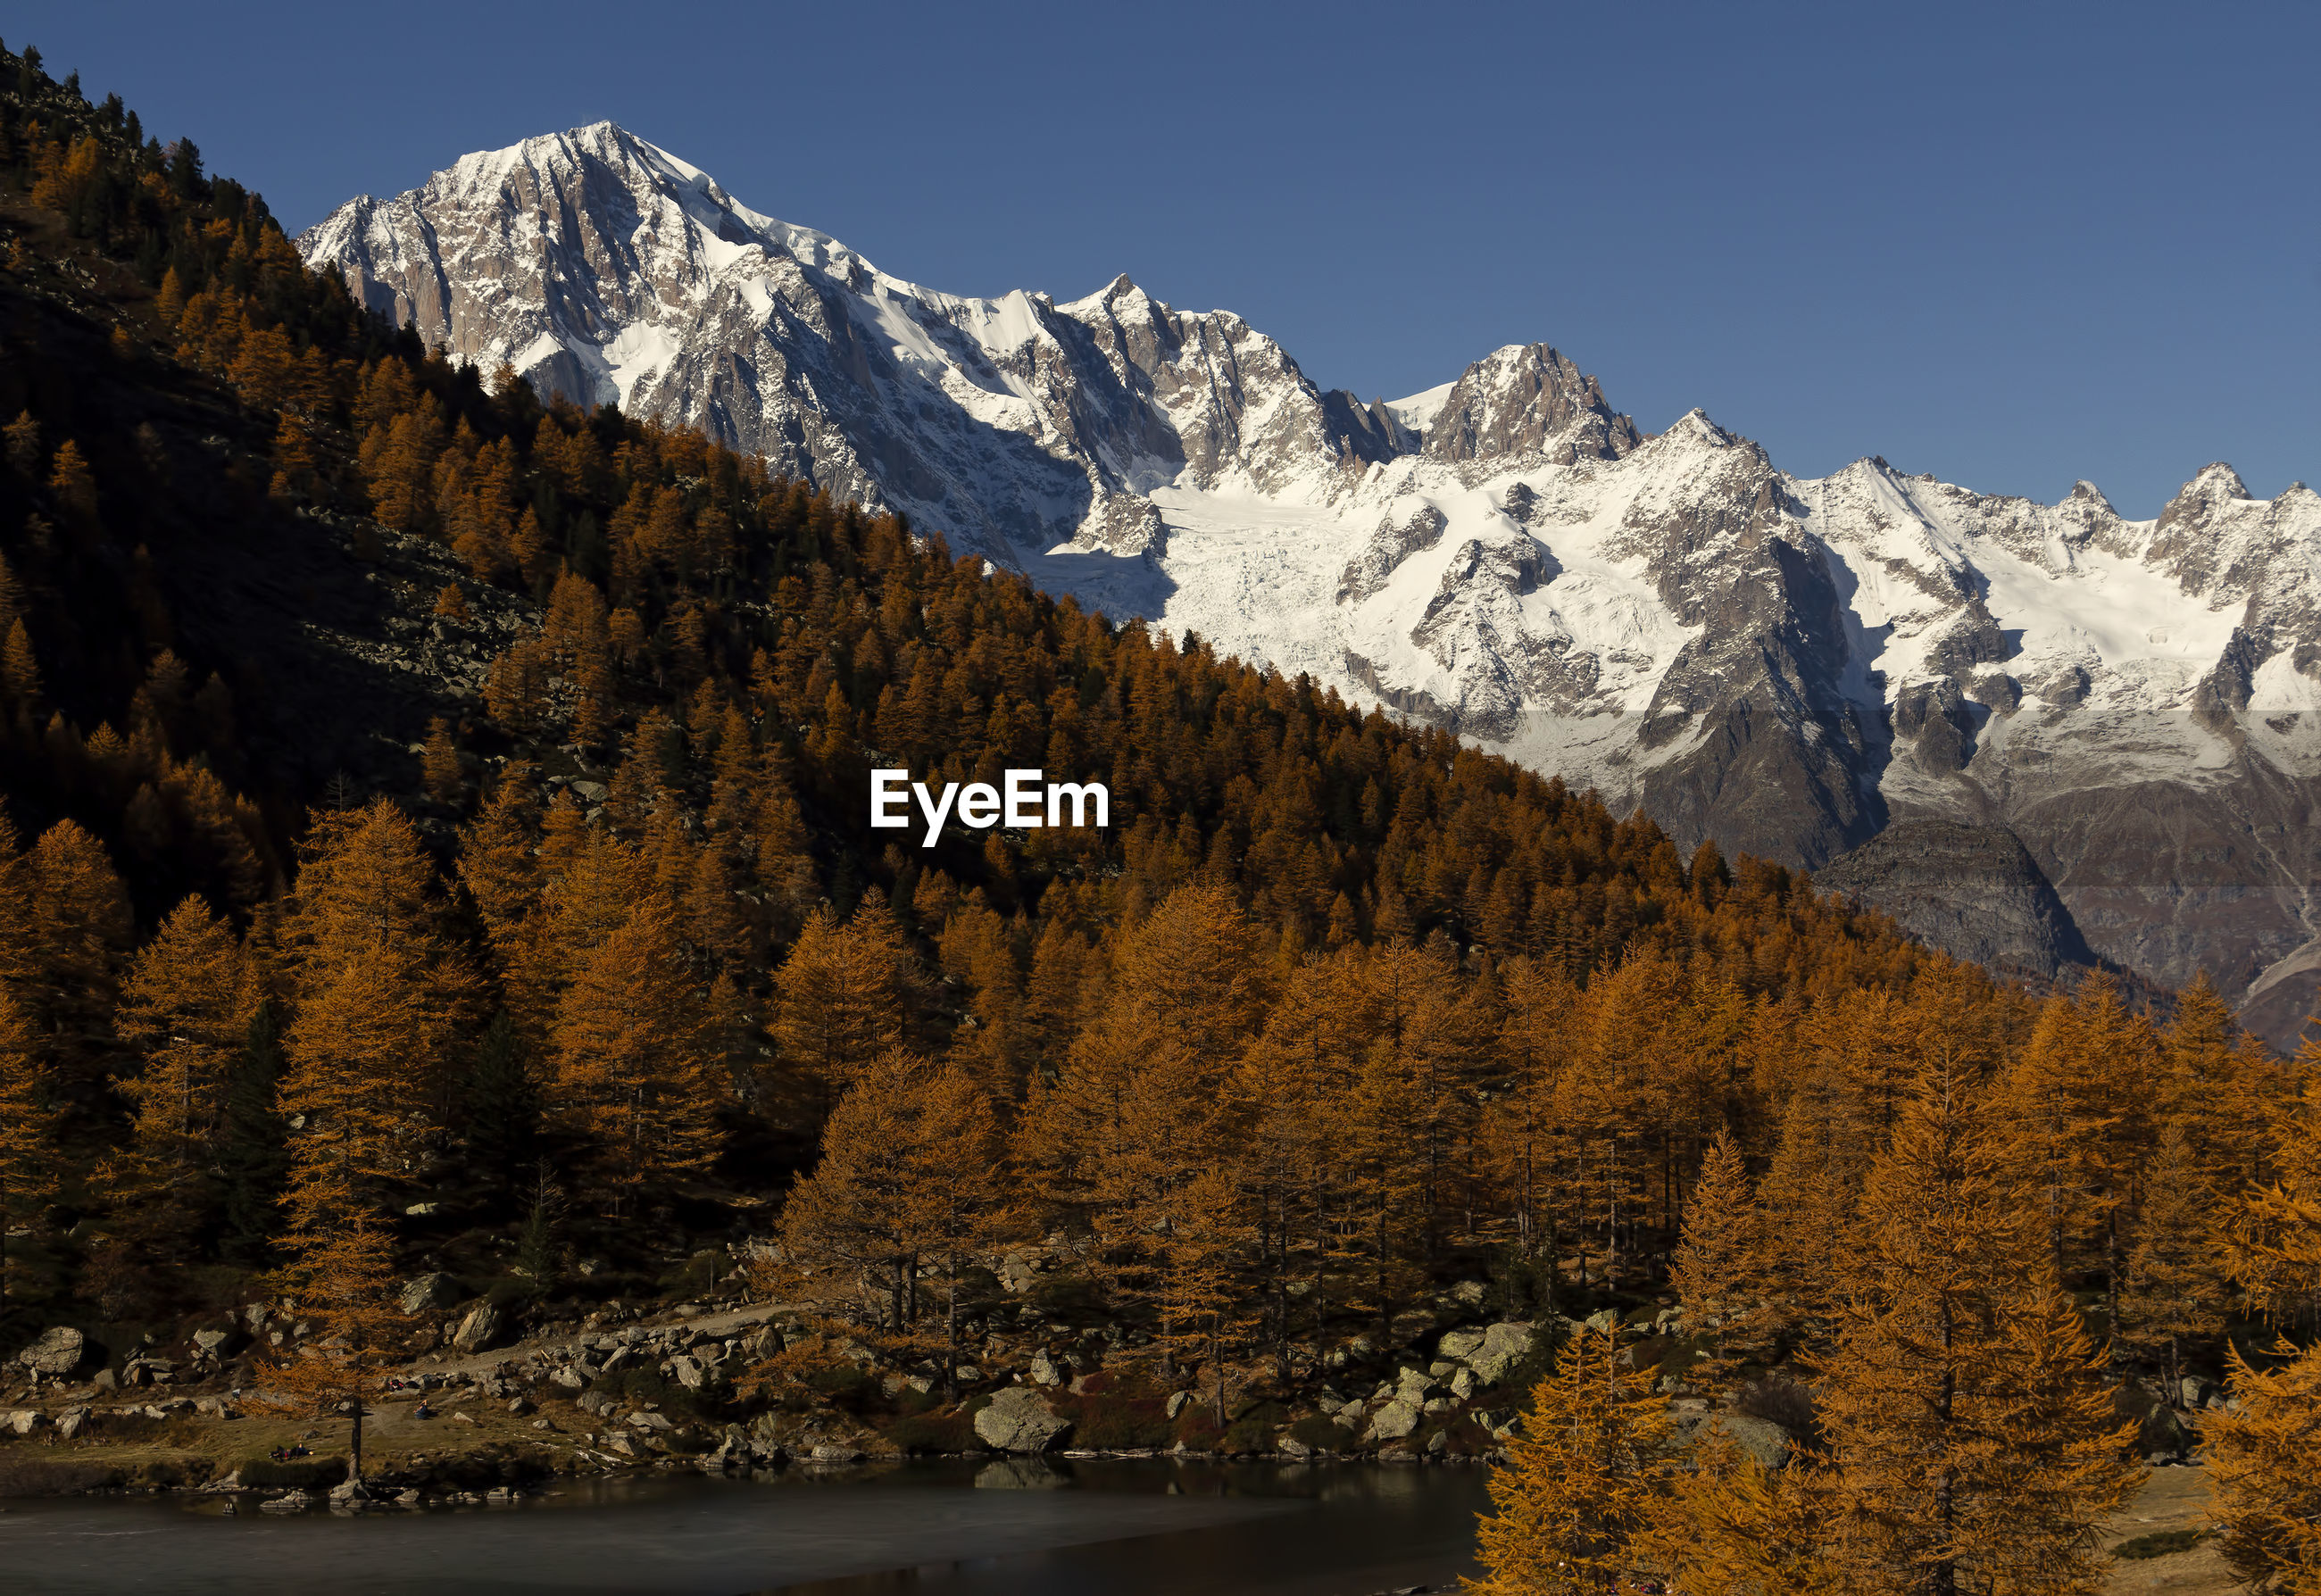 Scenic view of snowcapped mountains during autumn